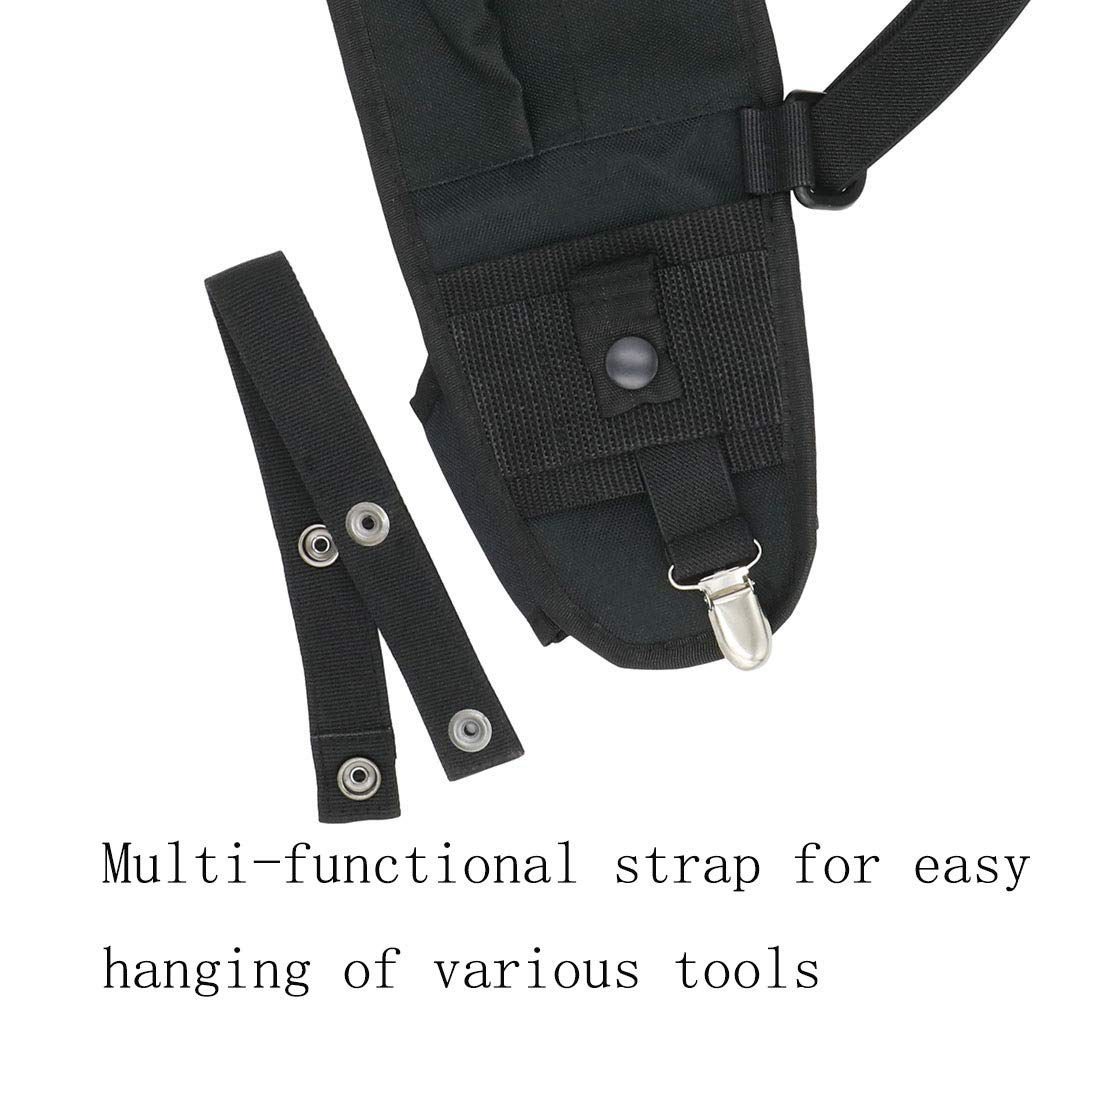 GoodQbuy Universal Double Radio Shoulder Harness Chest Rig Bag Pocket Pack Holster Vest for Two Way Radio Rescue Essentials Vest Harness